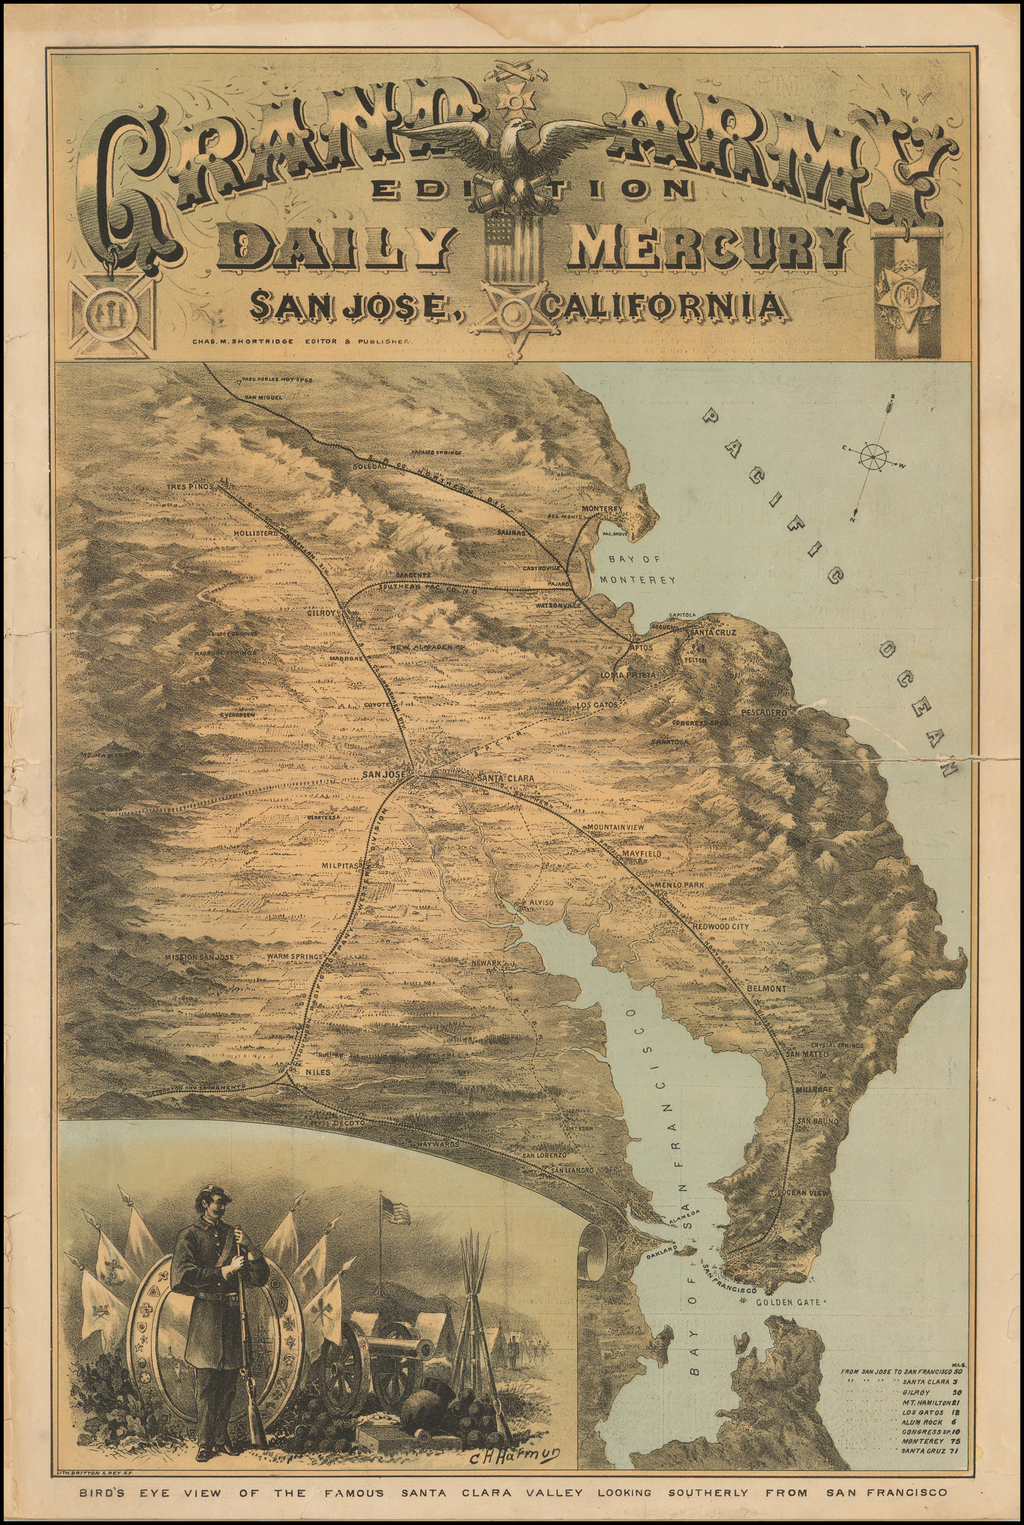 Bird's Eye View of the Famous Santa Clara valley Looking Southerly from San Francisco By Britton & Rey